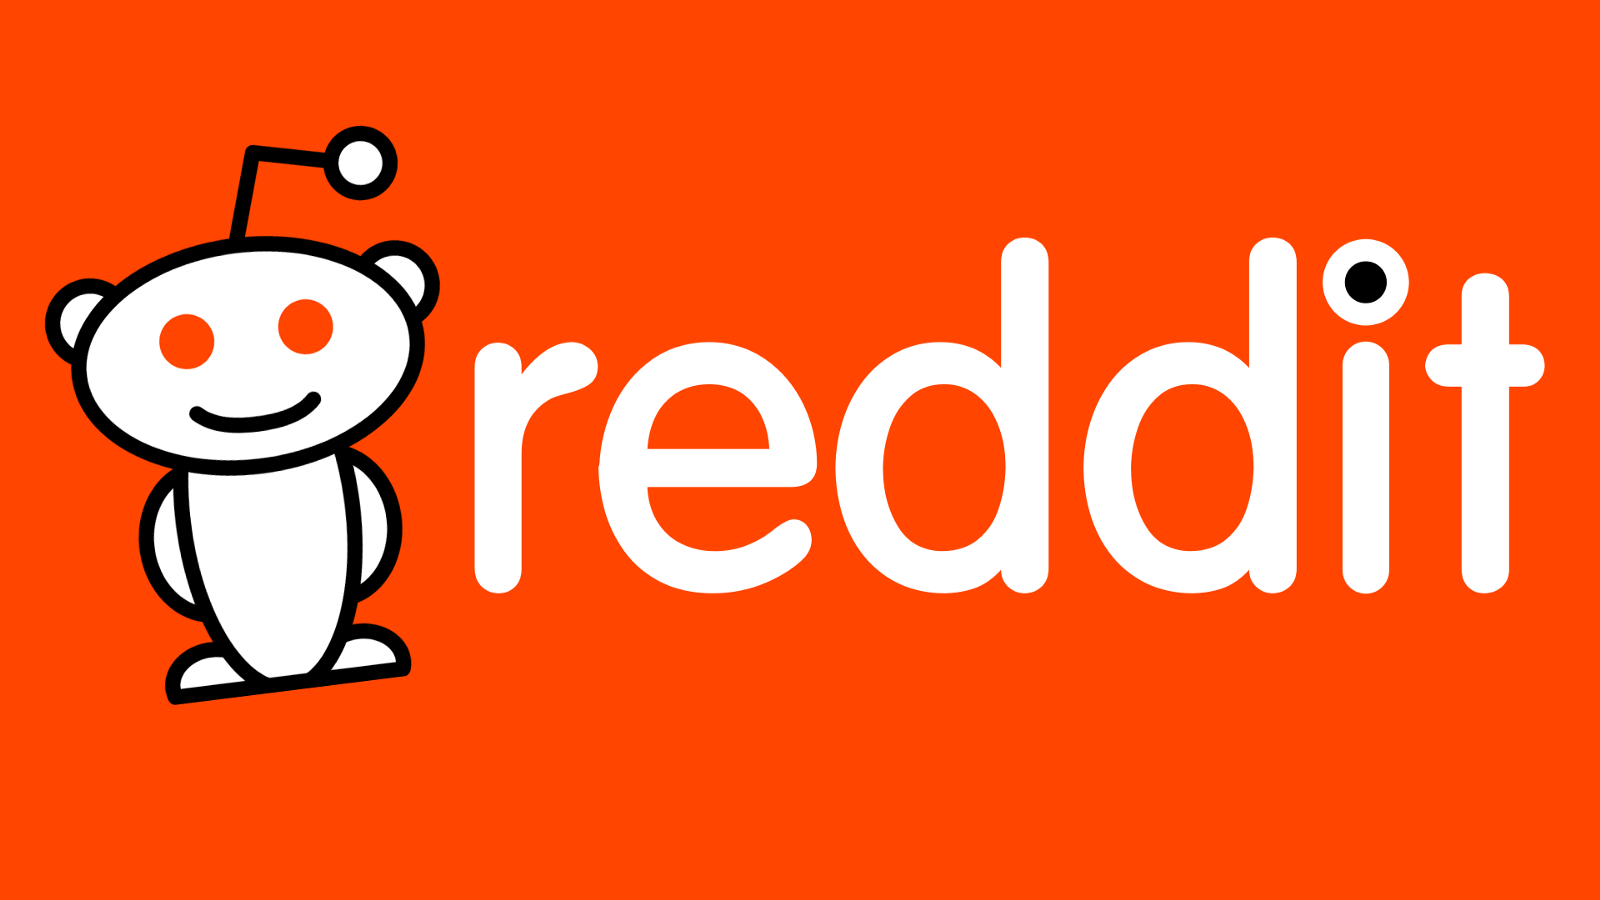 Reddit users are almost worthless compared to other social networks